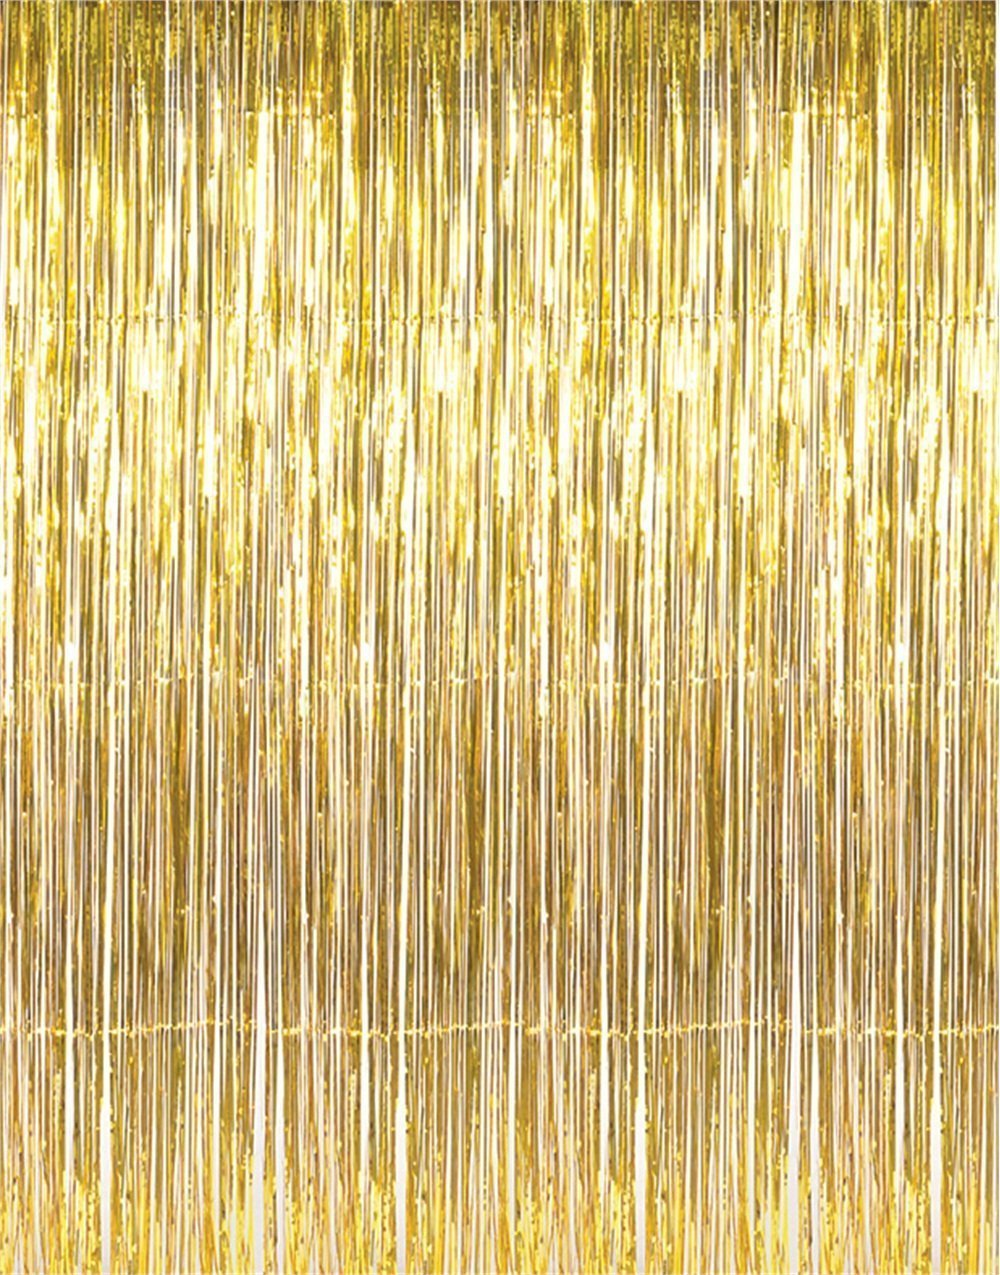 2PCS Metallic Foil Fringe Curtains 3 ft W. x 6.6 ft. For Bridal Baby ...